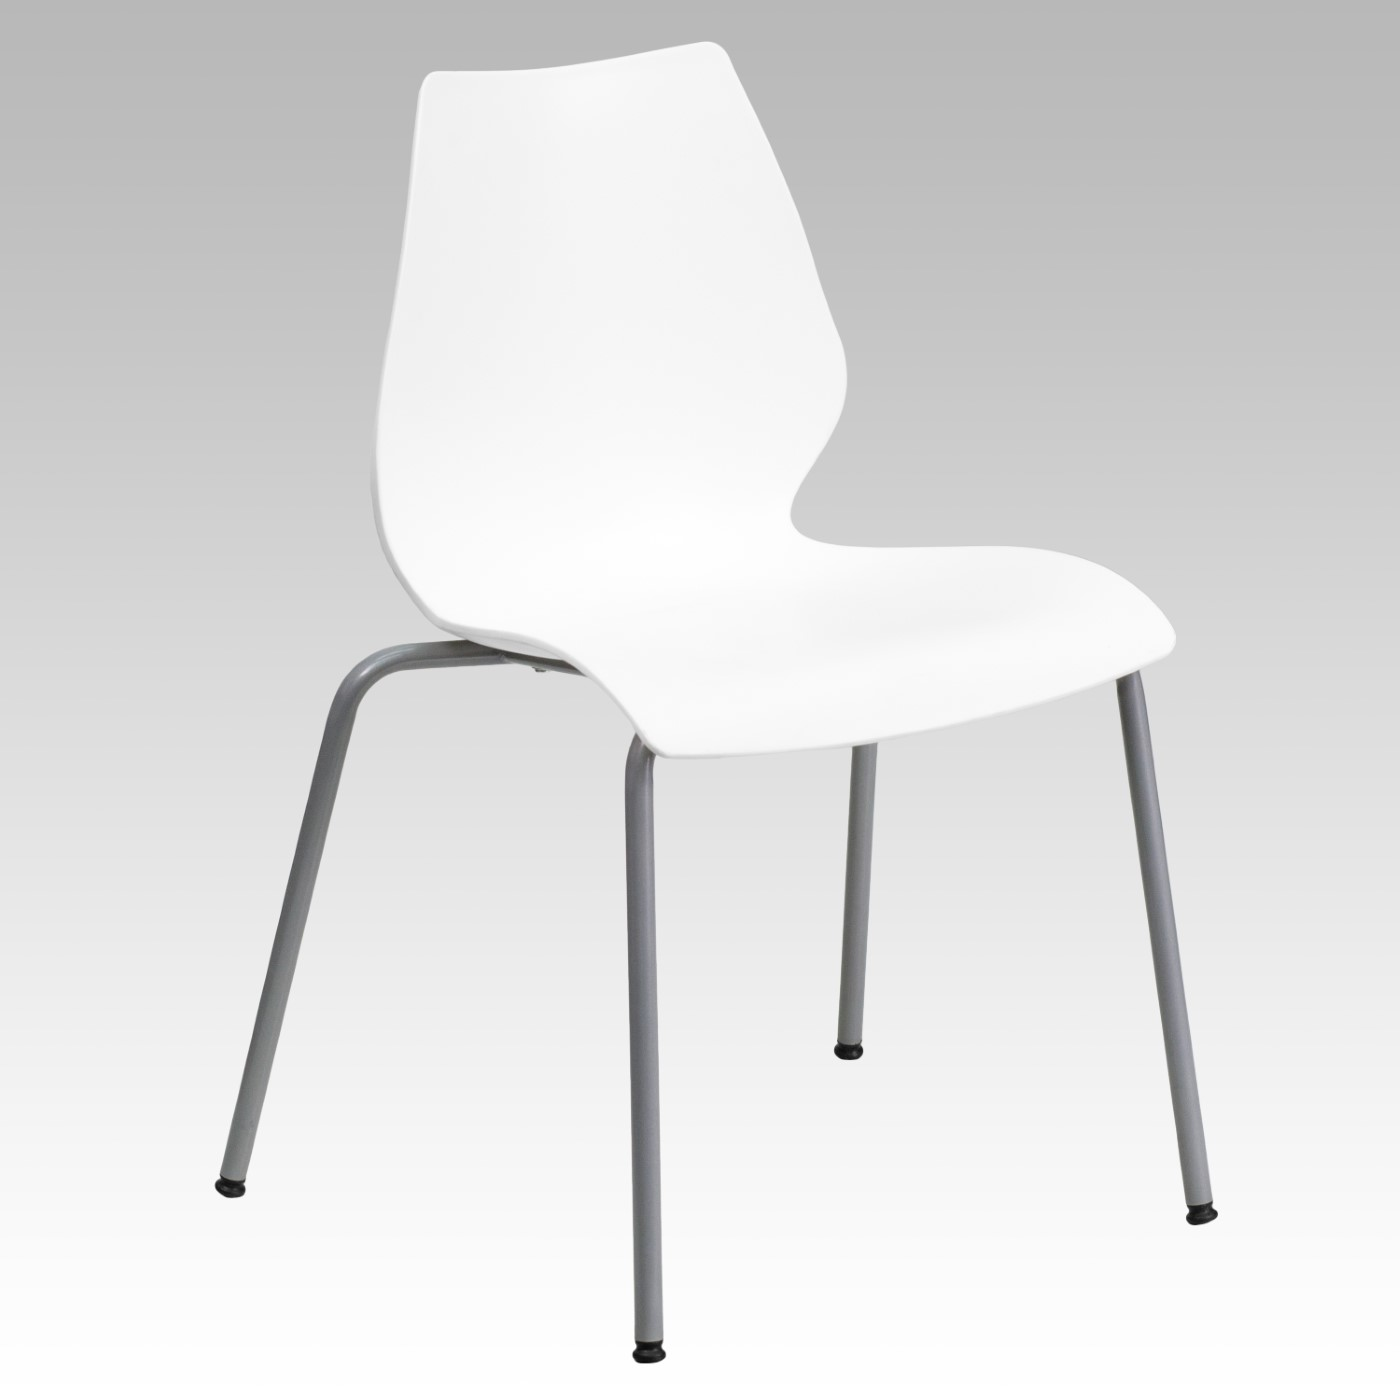 TOUGH ENOUGH Series 770 lb. Capacity White Stack Chair with Lumbar Support and Silver Frame